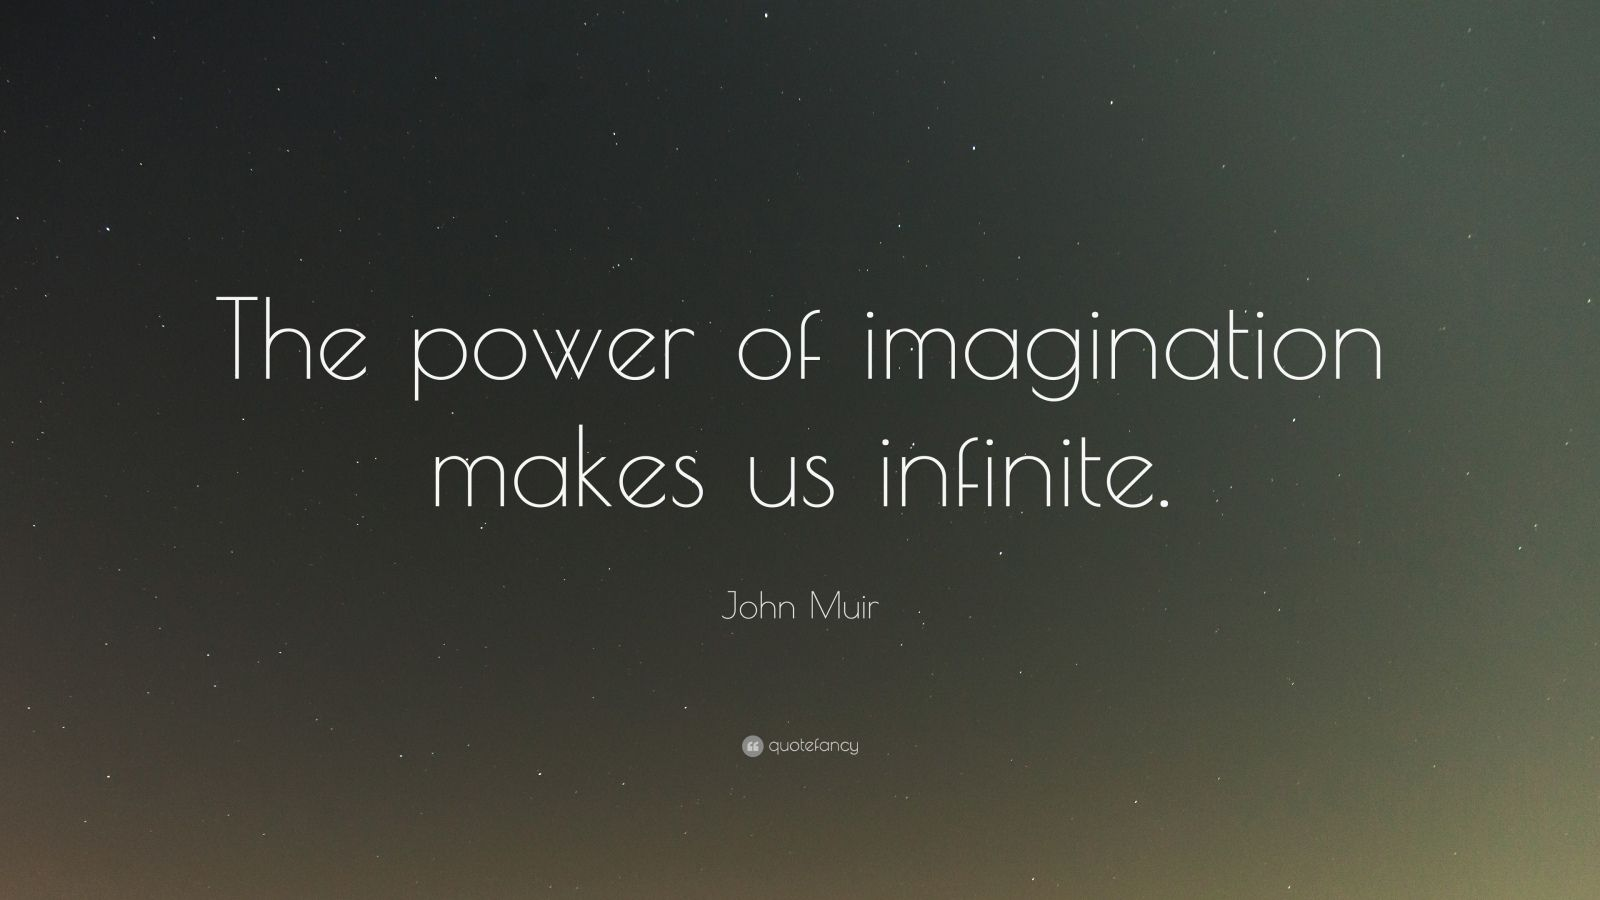 Henry David Thoreau Wallpaper Quote John Muir Quote The Power Of Imagination Makes Us